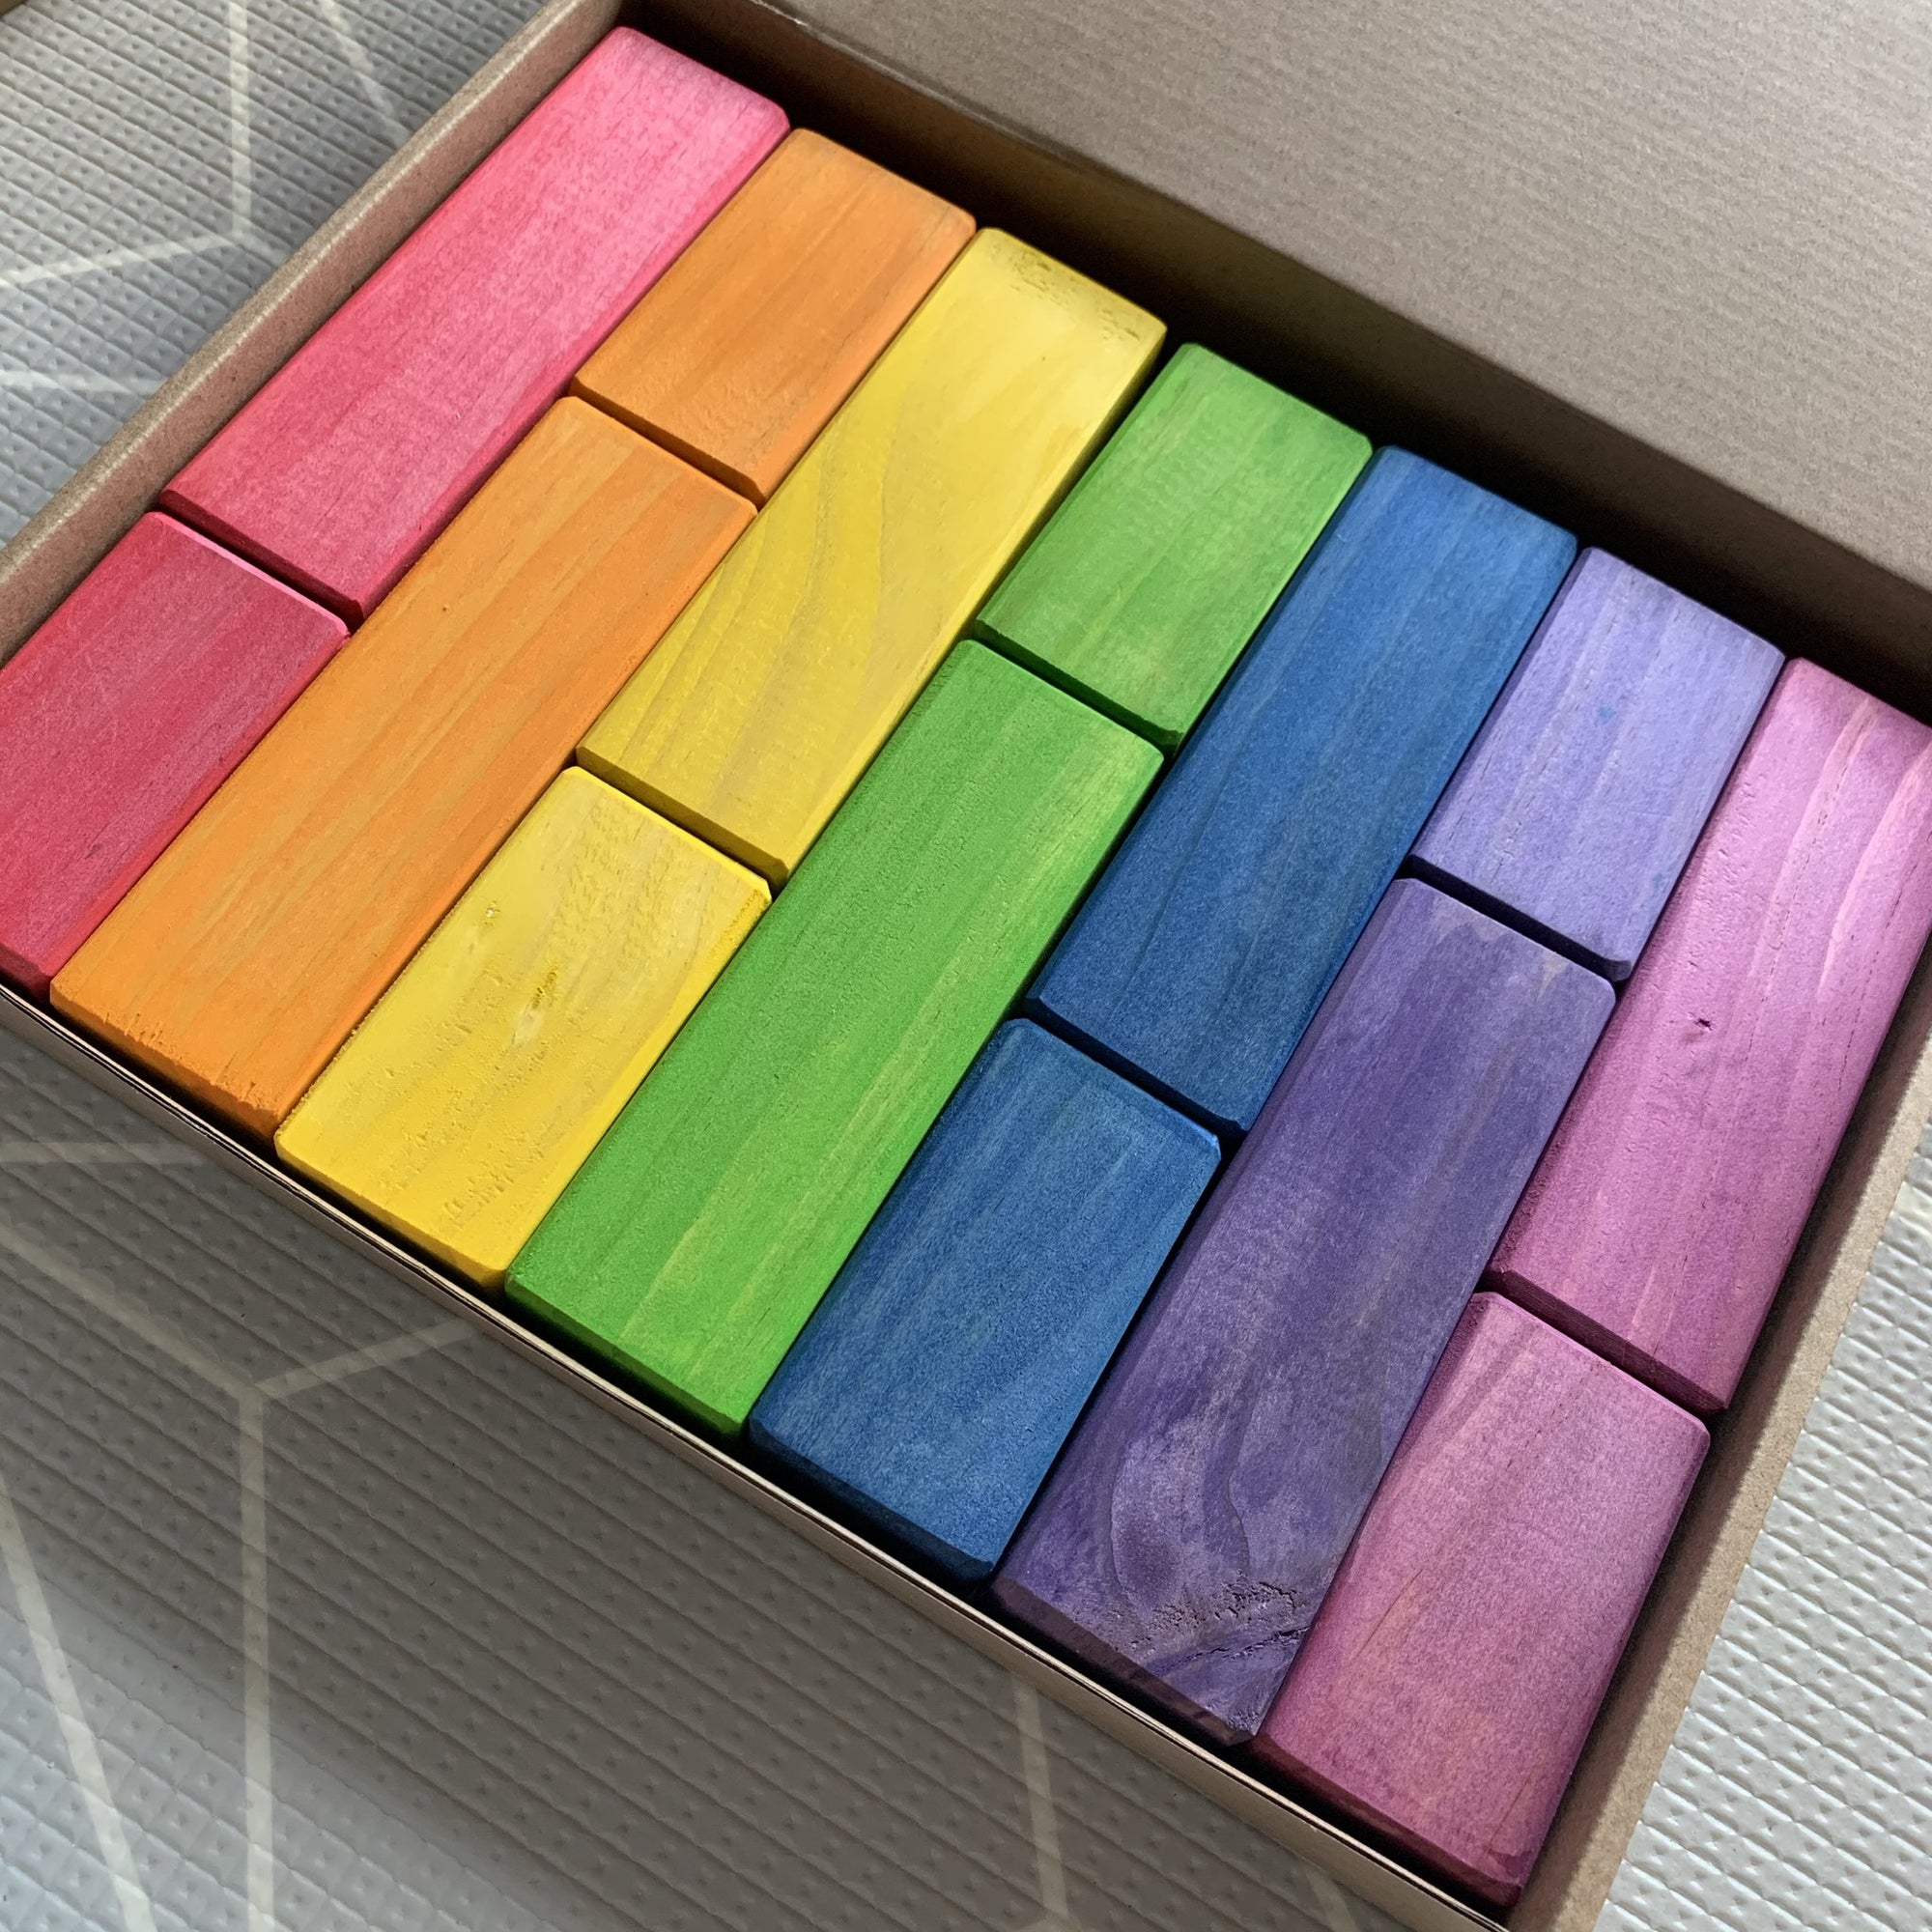 Rata and Roo Rainbow Square Prism Mixed Blocks